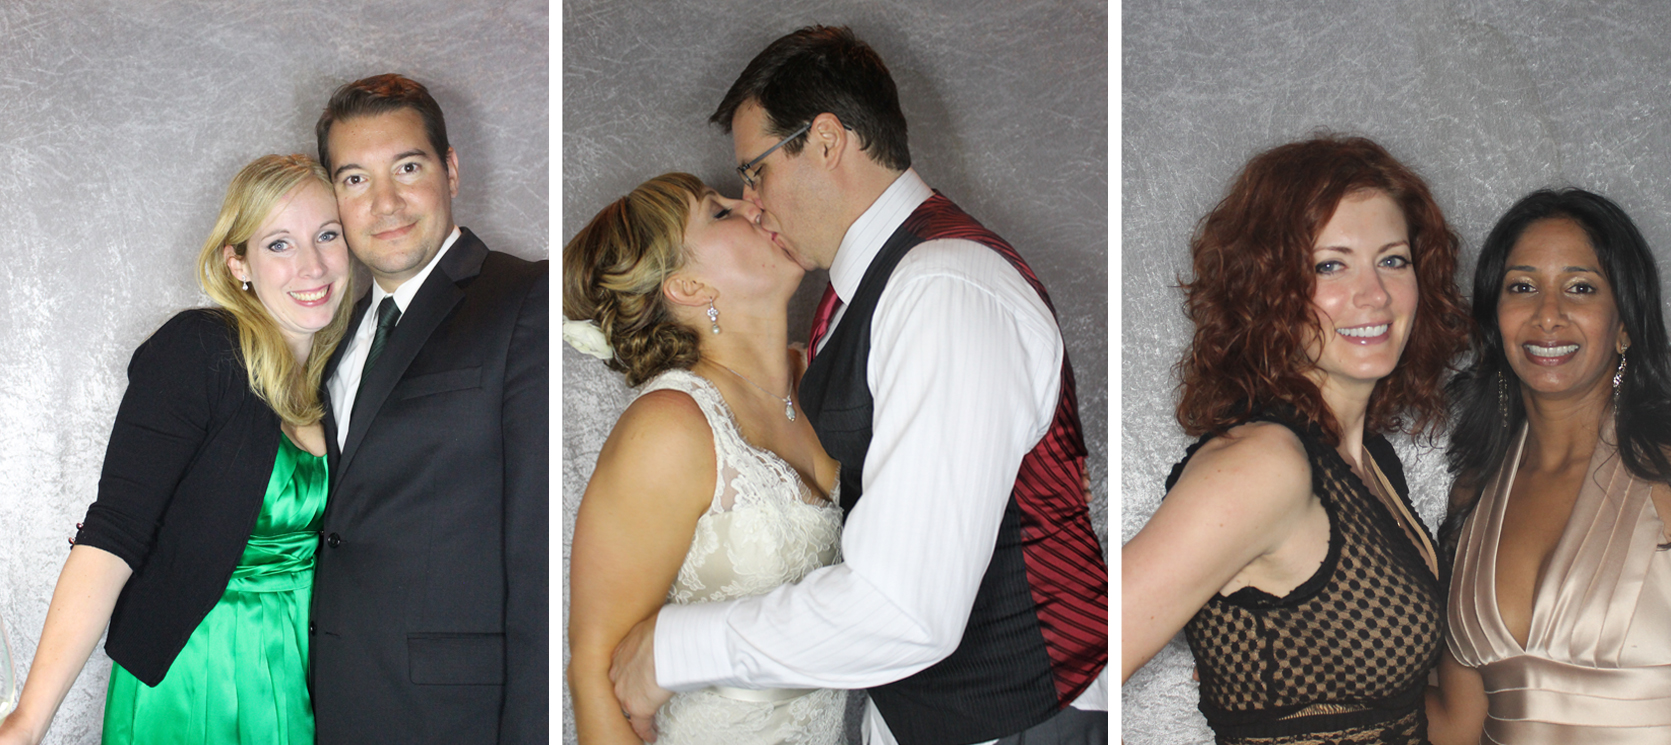 Images of the Bride and Groom in their Photo Booth